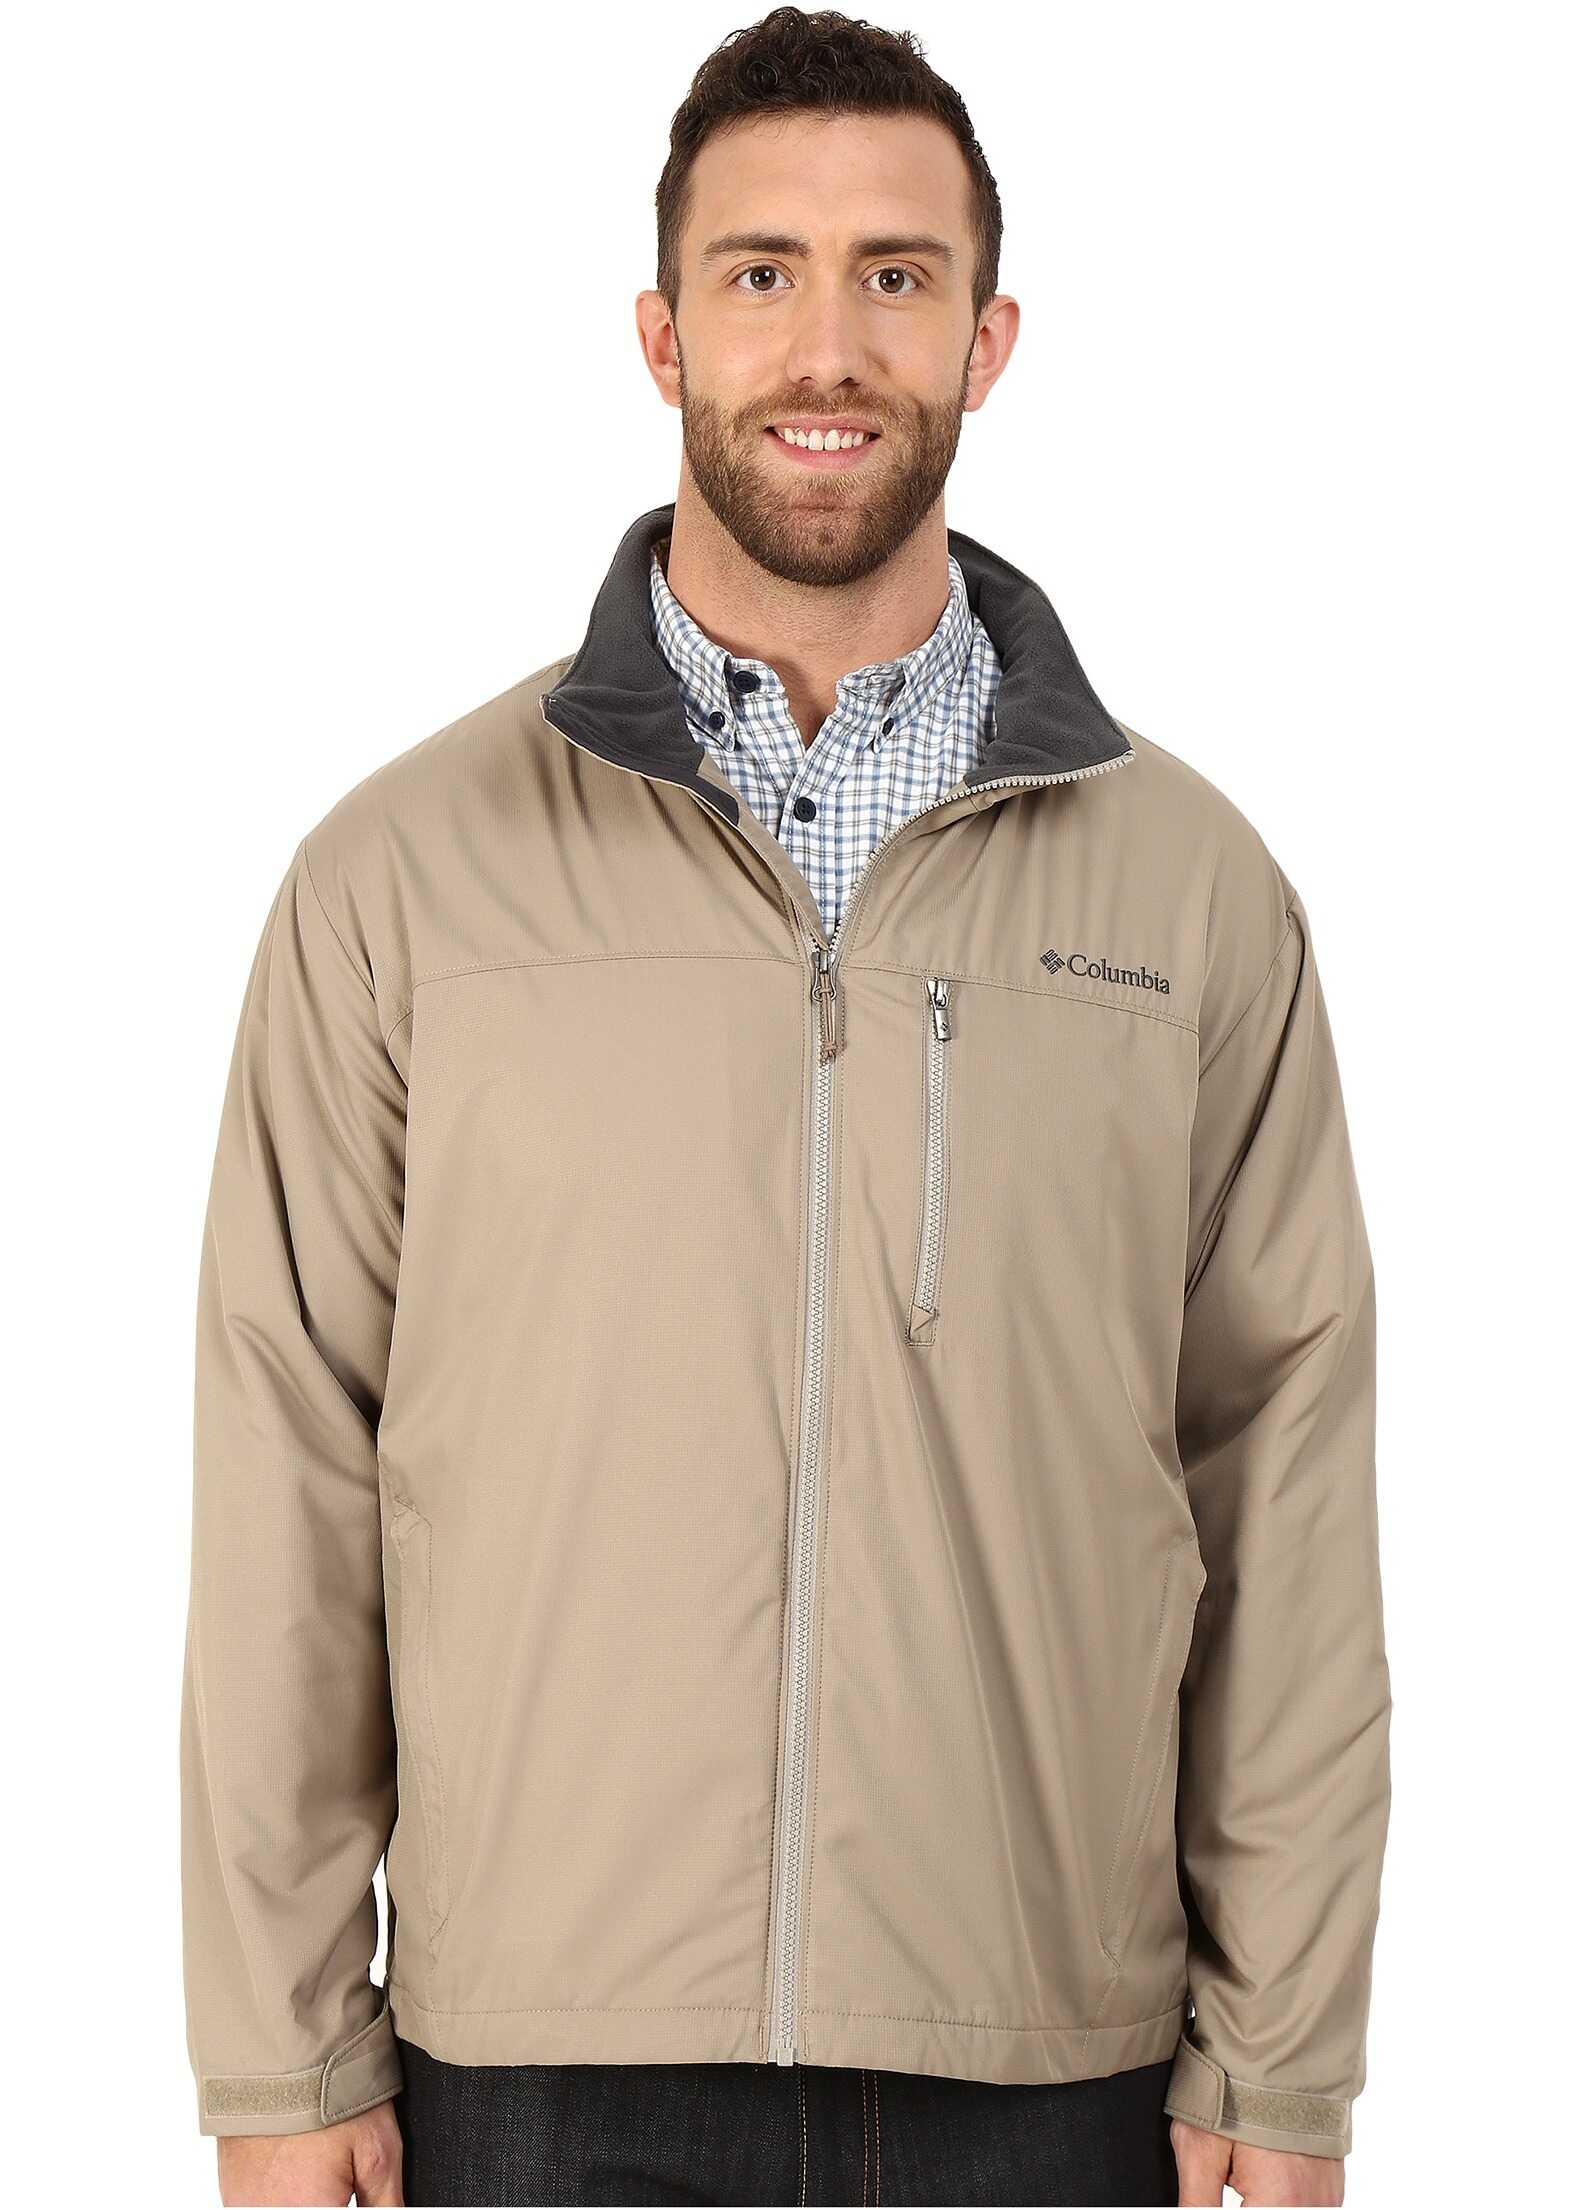 Columbia Big & Tall Utilizer™ Jacket Tusk